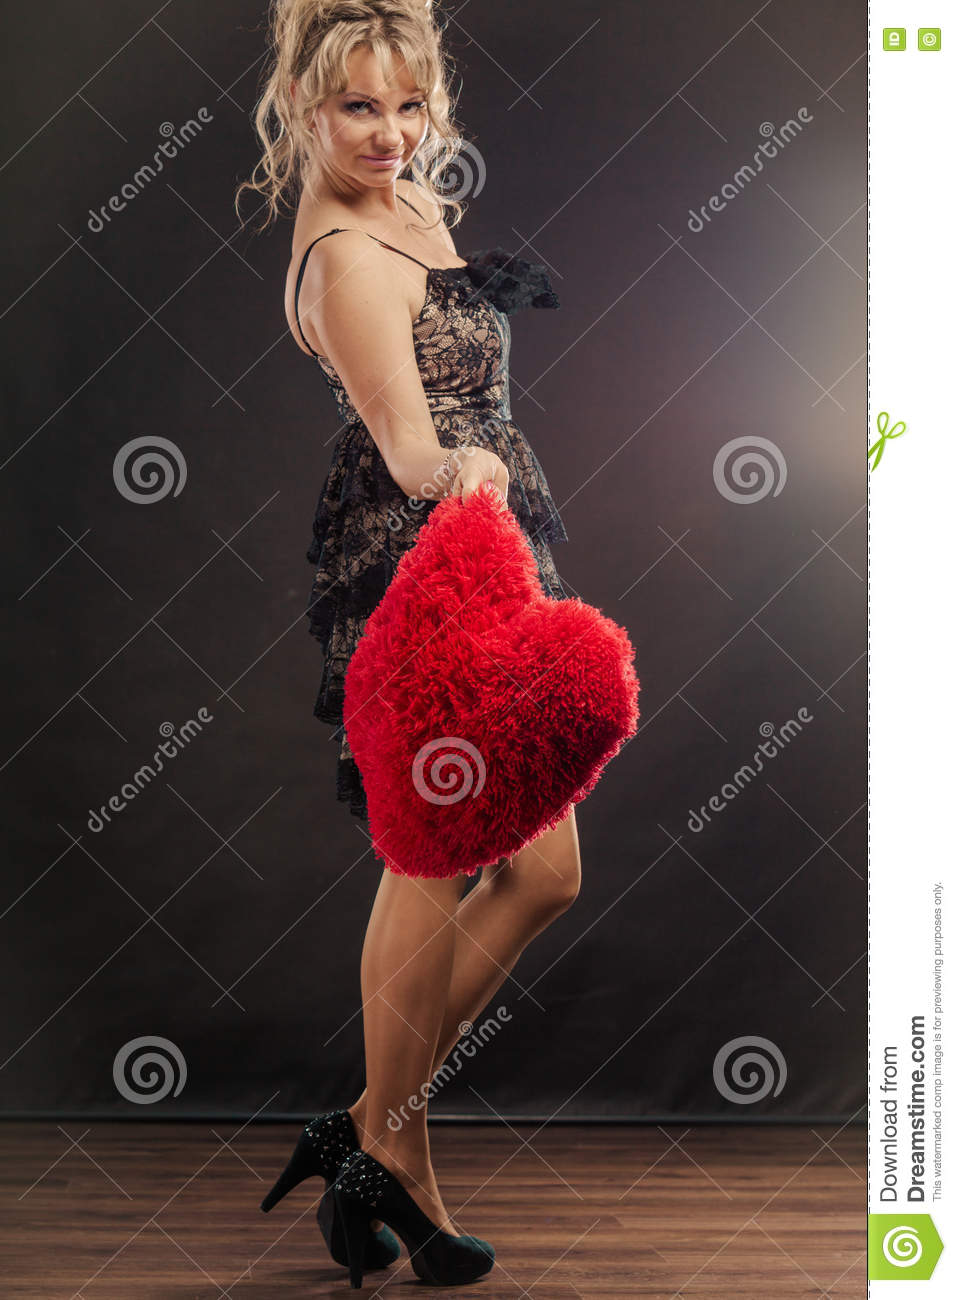 mature woman holds big red heart stock image - image of sensual